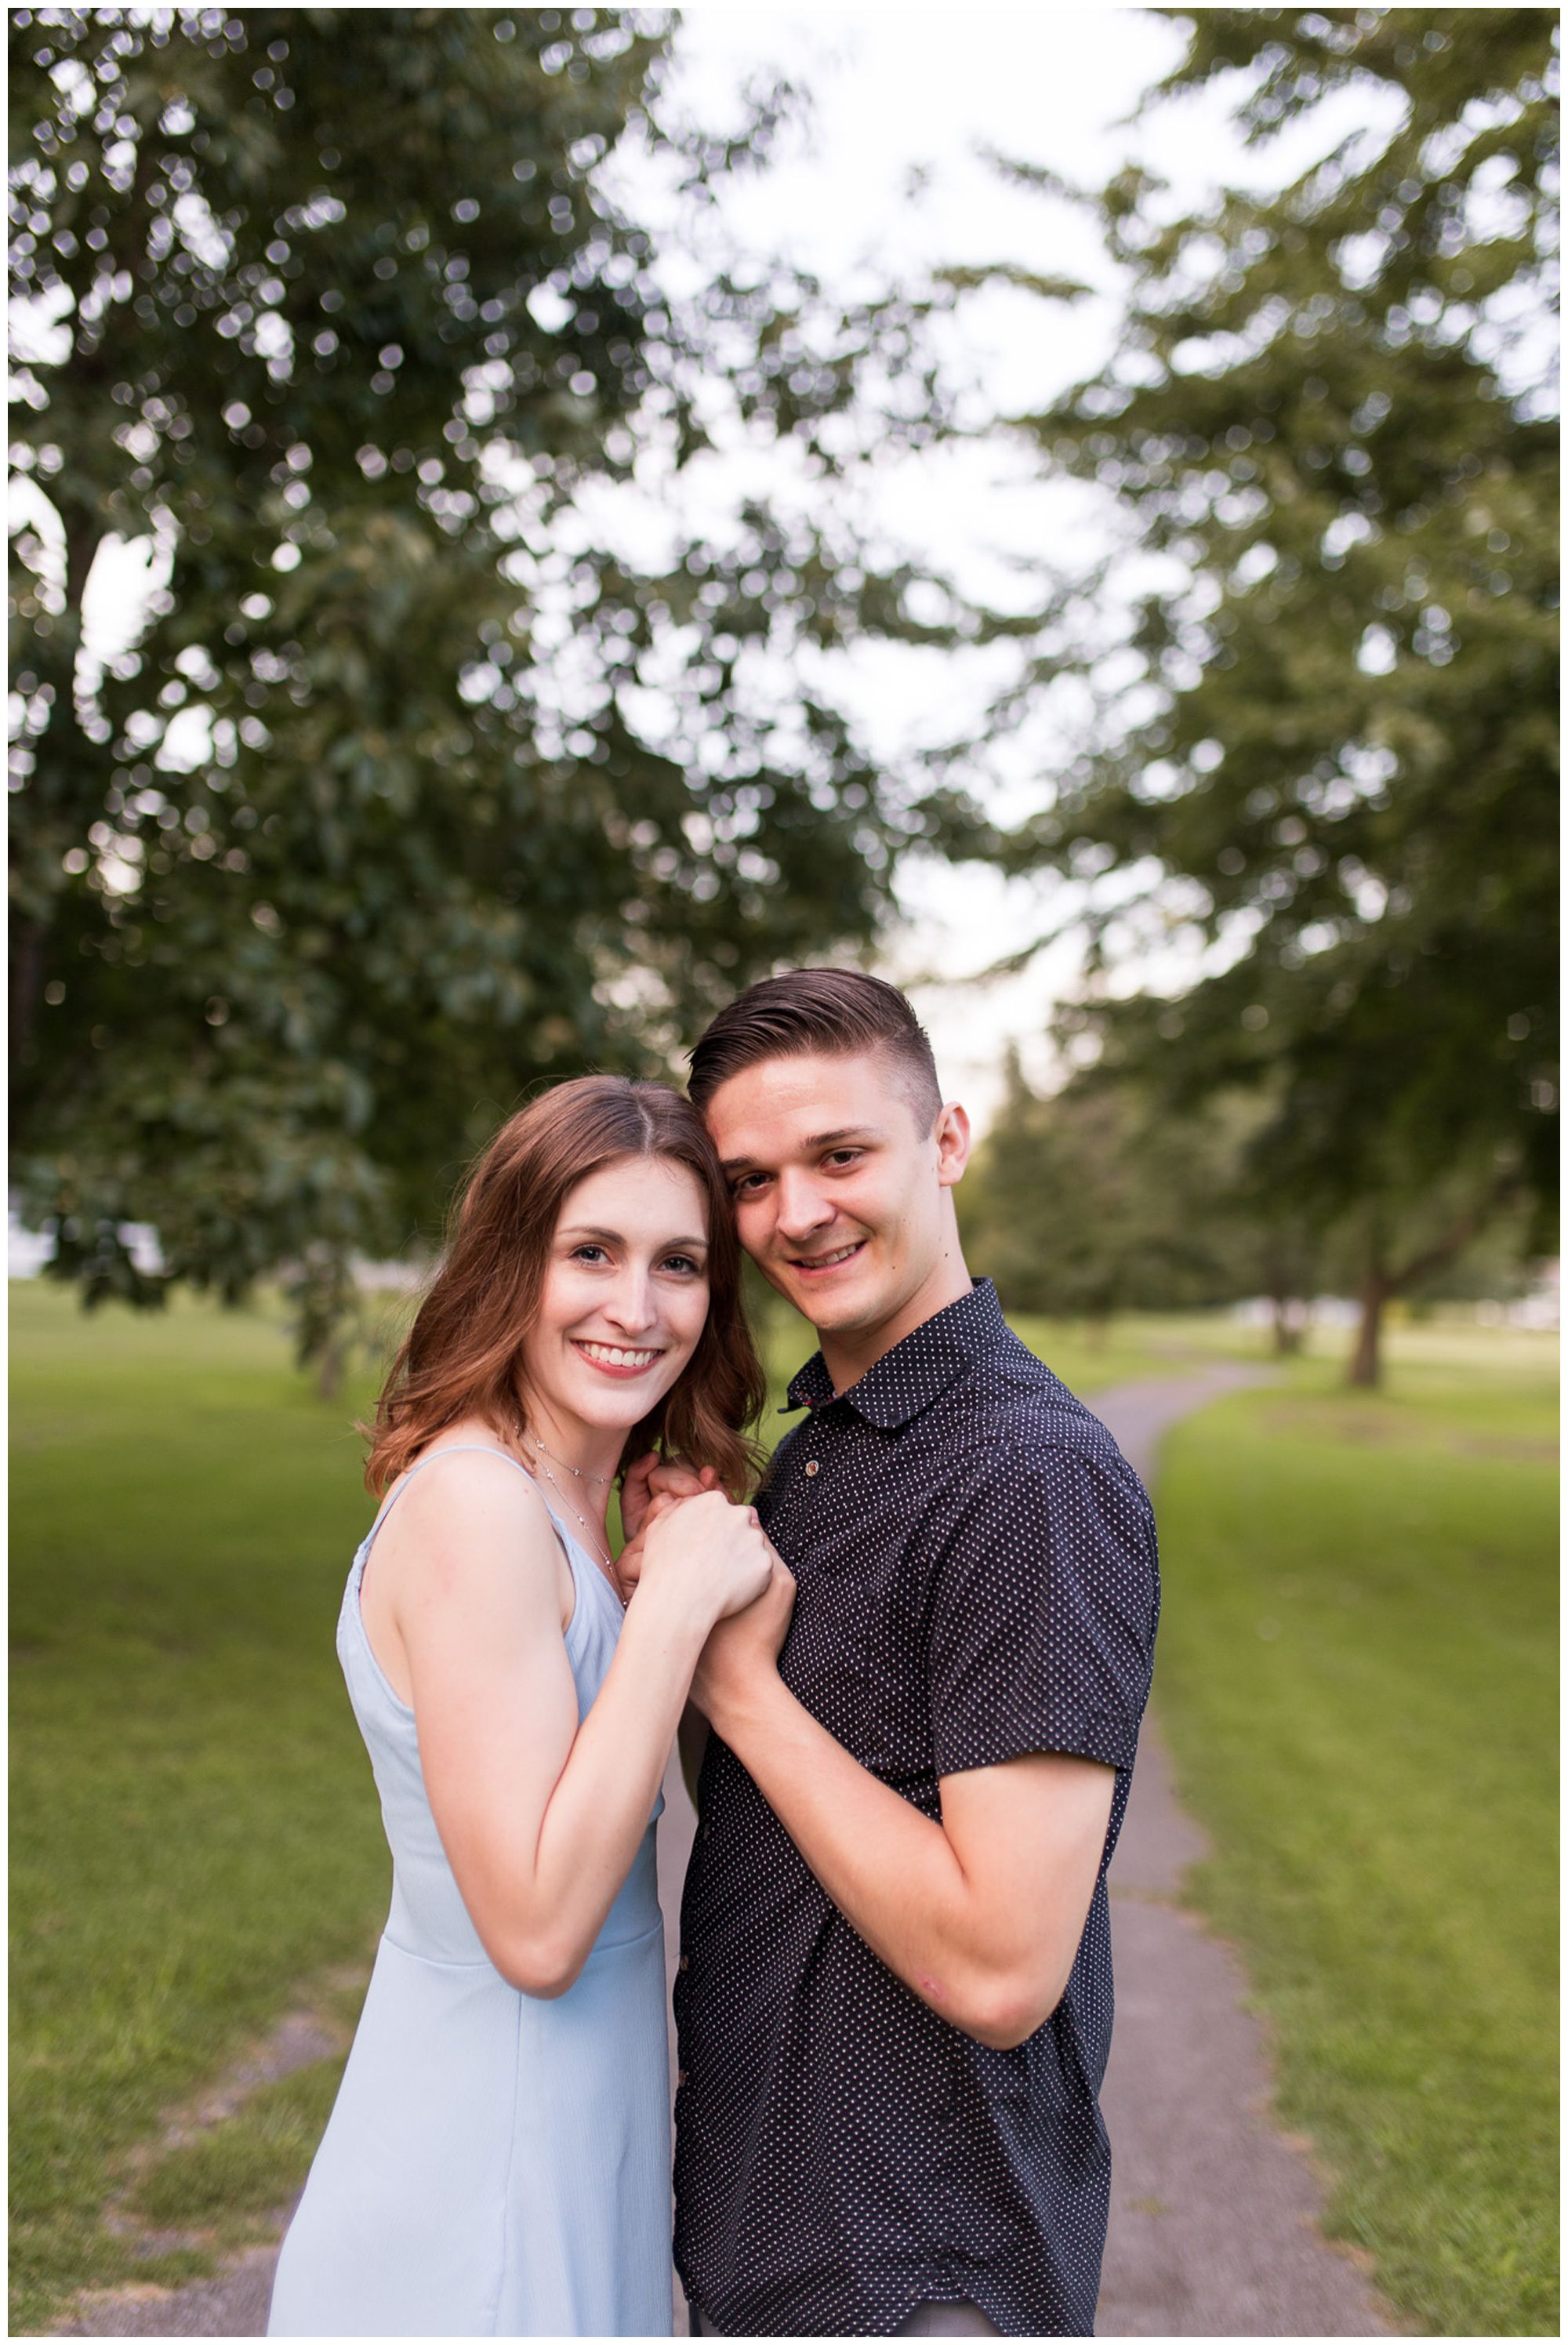 couple cups hands together during Foster Park engagement session in Fort Wayne, Indiana